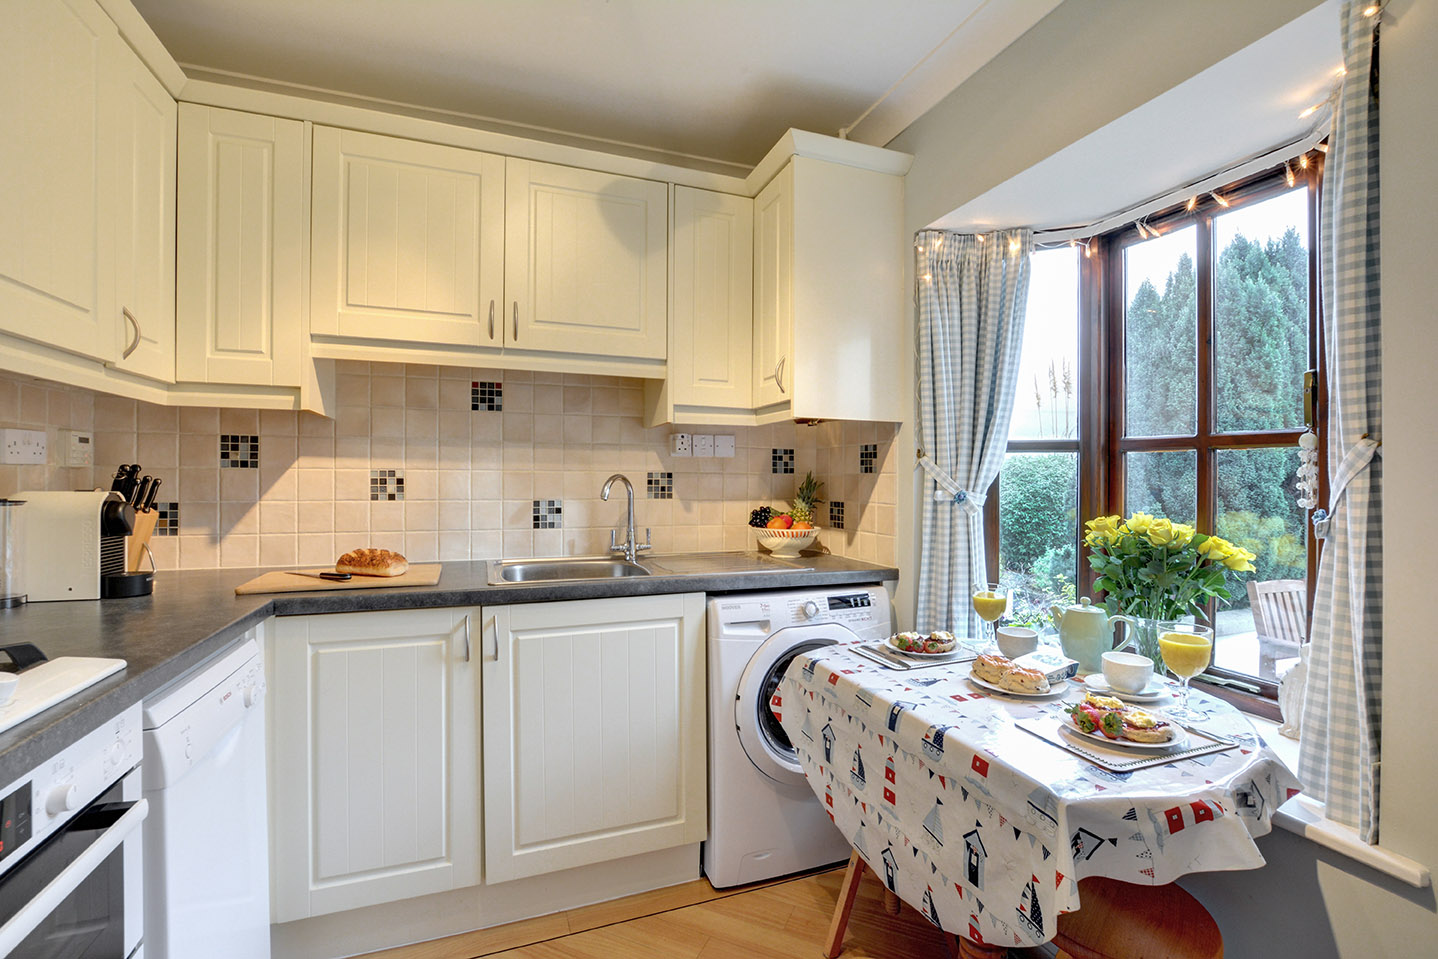 Ship Shape cosy holiday cottage in seaside harbour of Padstow kitchen.jpg